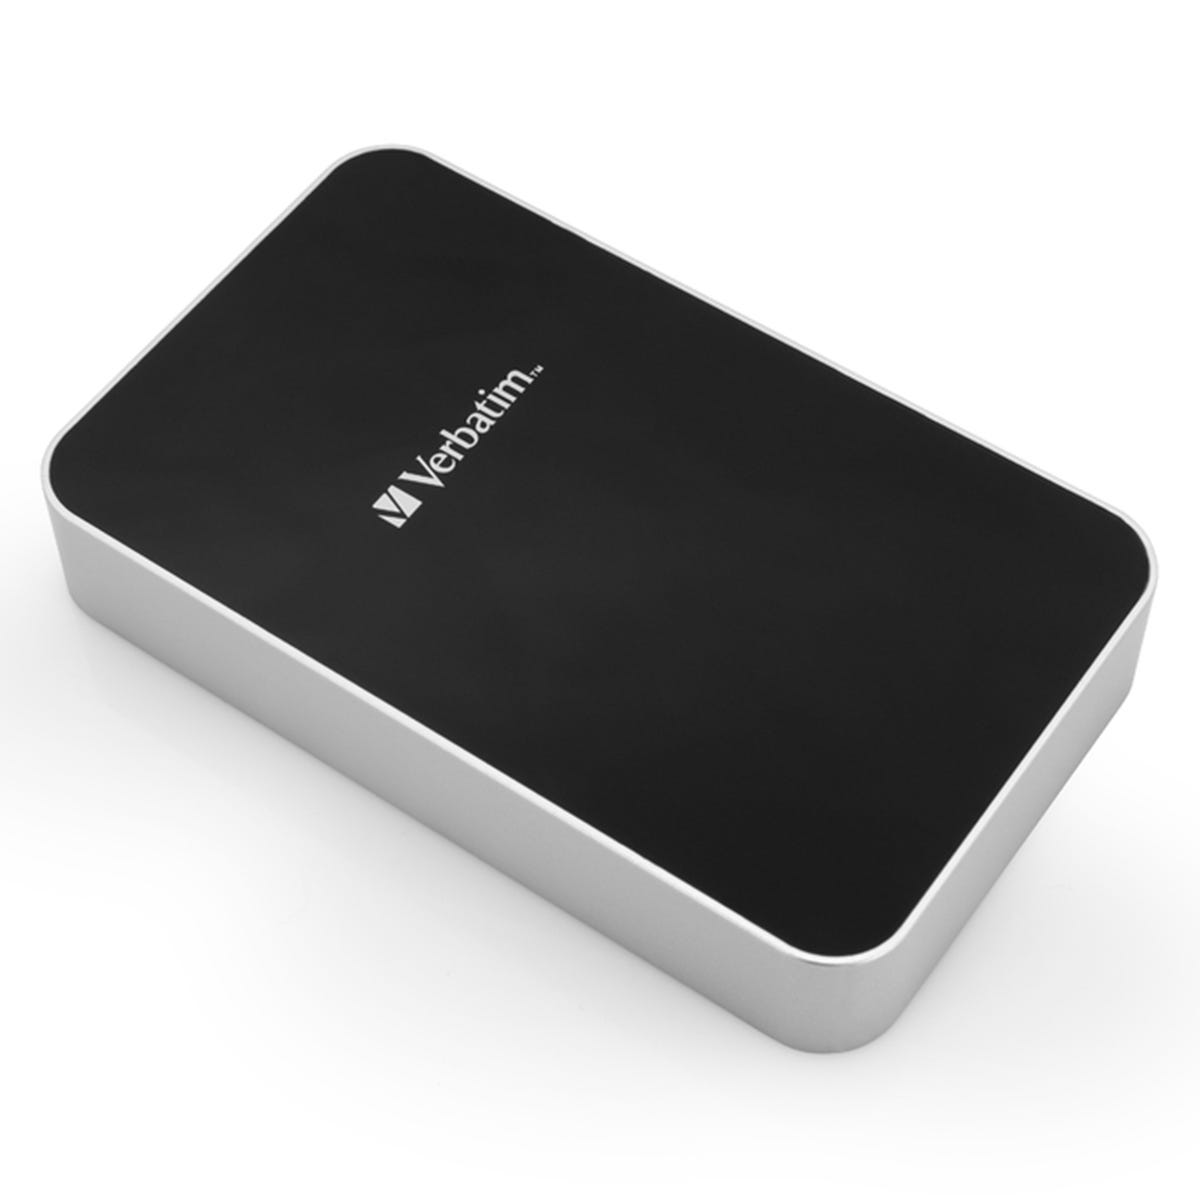 Image of Verbatim 10400mAh Pocket Power Bank Dual USB and LED display